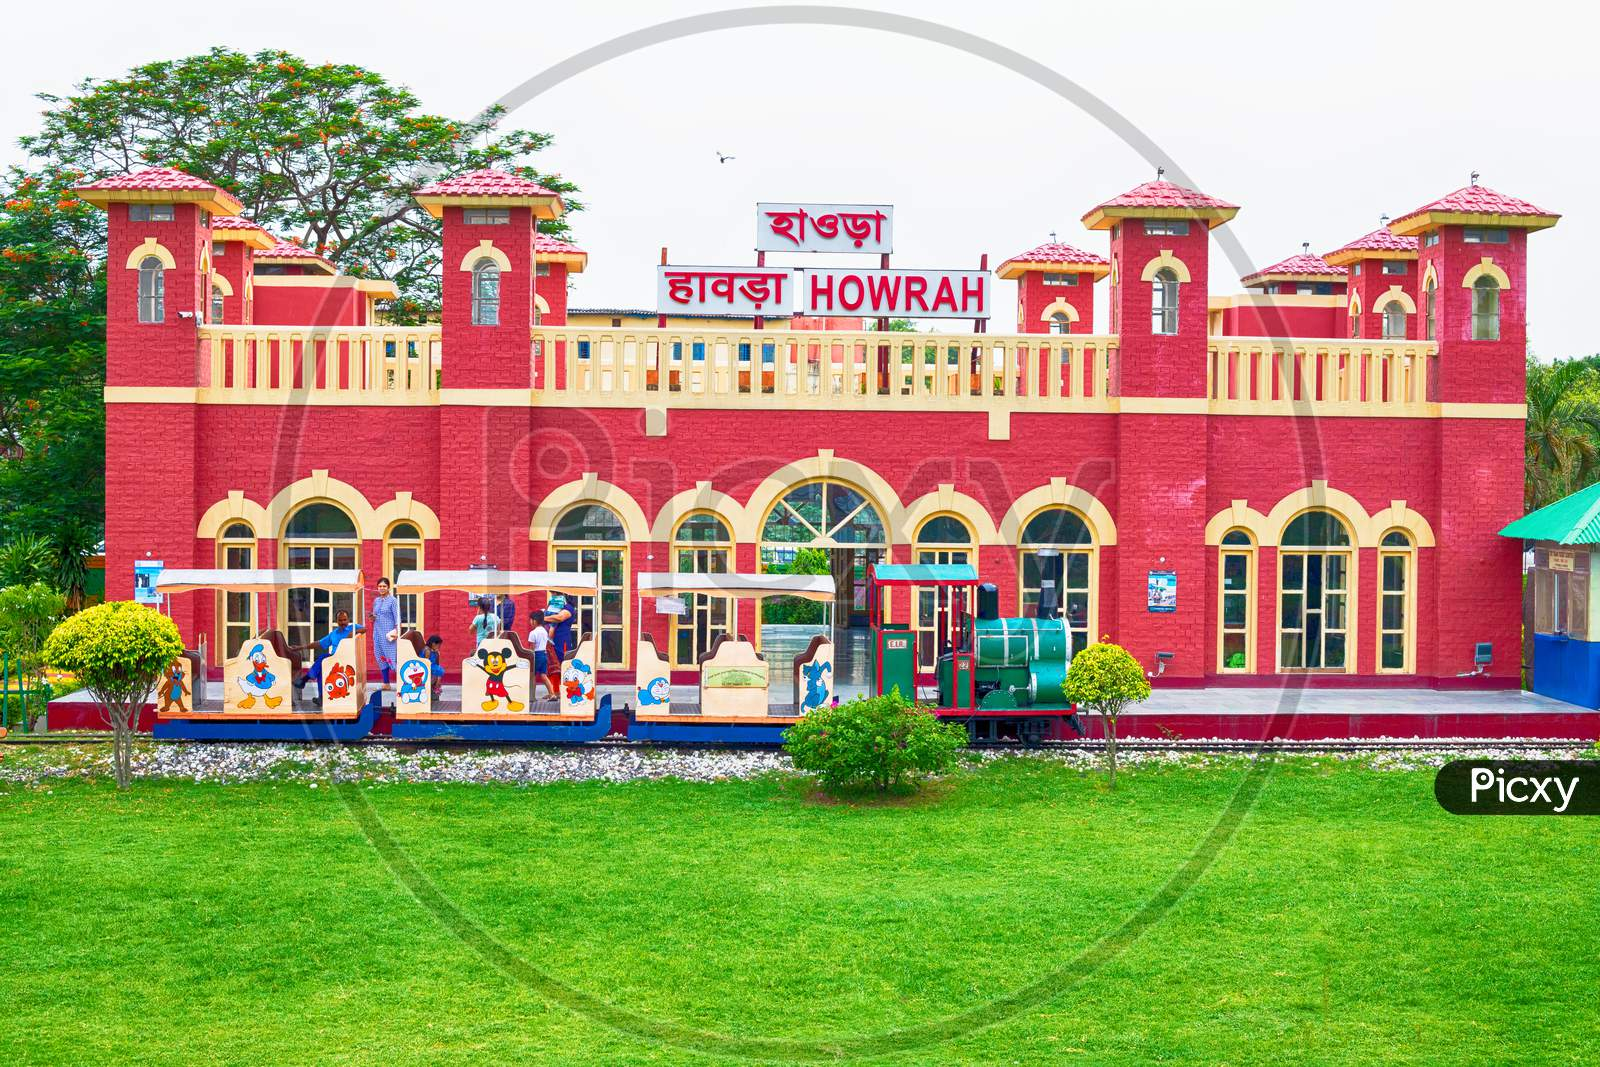 ancient, architecture, asian, buildings, calcutta, city, city architecture, city life, cityscape, colonial, colorful, culture, destination, exterior, famous, heritage, historical, historical building, history, howrah, howrah junction, howrah railway station, howrah station, india, indian, kolkata, l